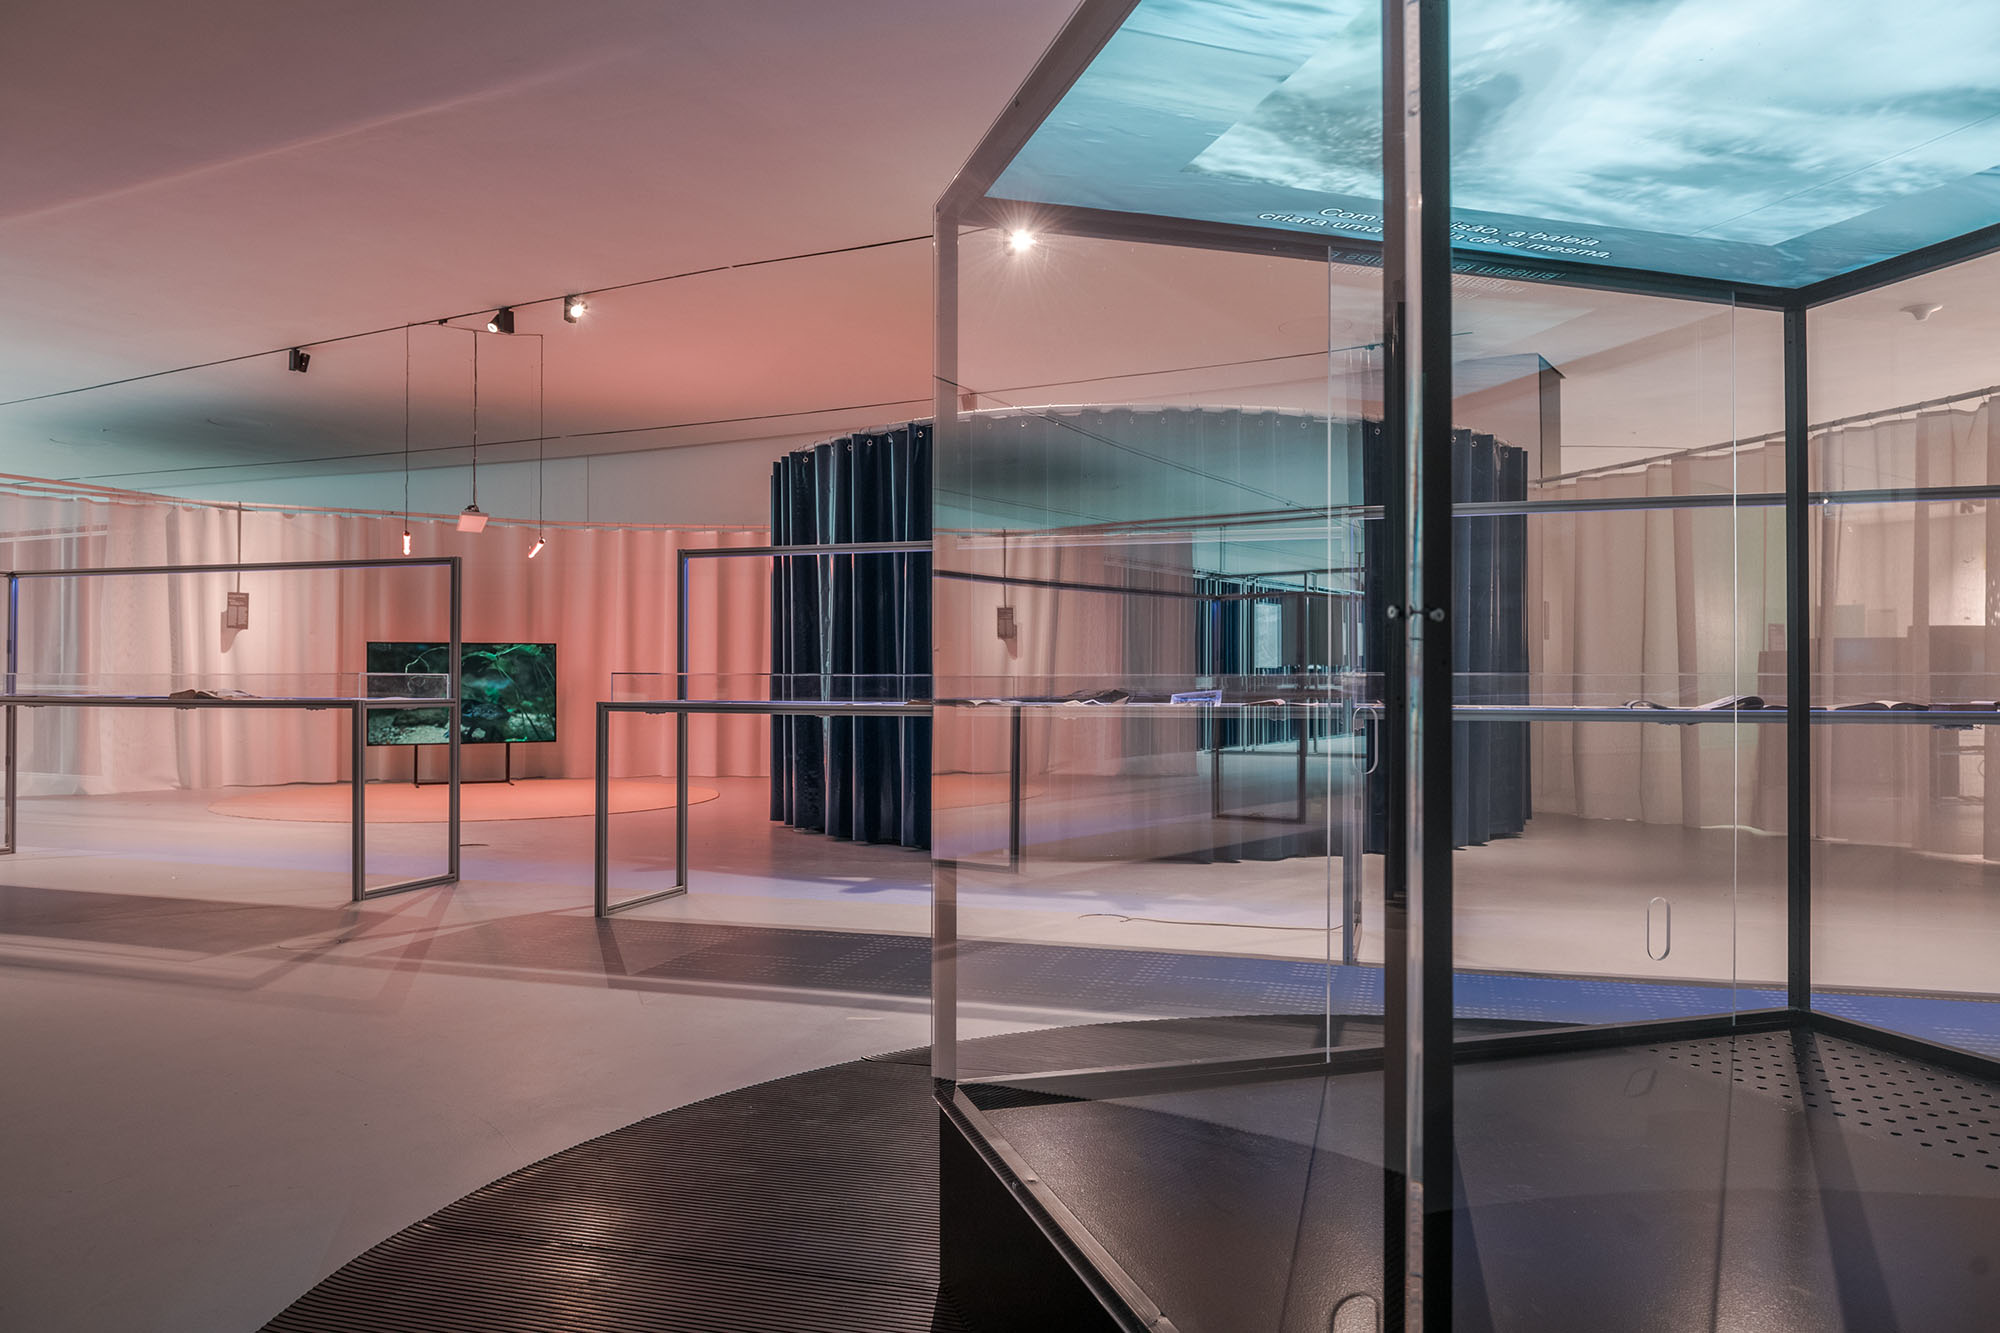 Aquaria. Or the Illusion of a Boxed Sea, installation view: Eva Jack, Parallel Lives II (Whale Watching), 2020. maat – Museum of Art, Architecture and Technology (Lisbon), 2021 © Courtesy of EDP Foundation. Photography by Pedro Pina.